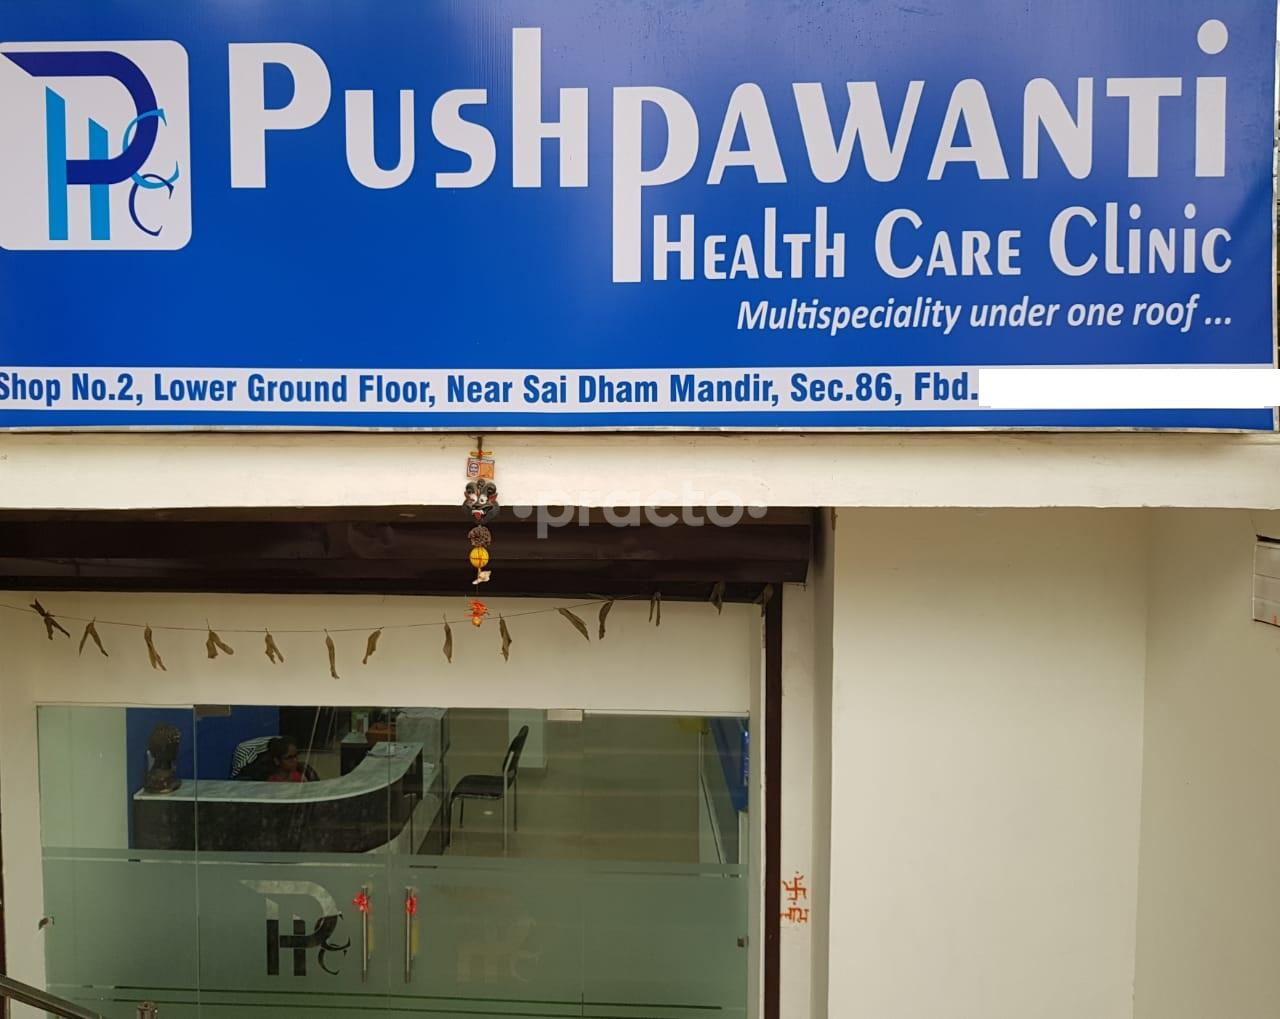 Doctors in Faridabad - Book Appointment Online, View Fees